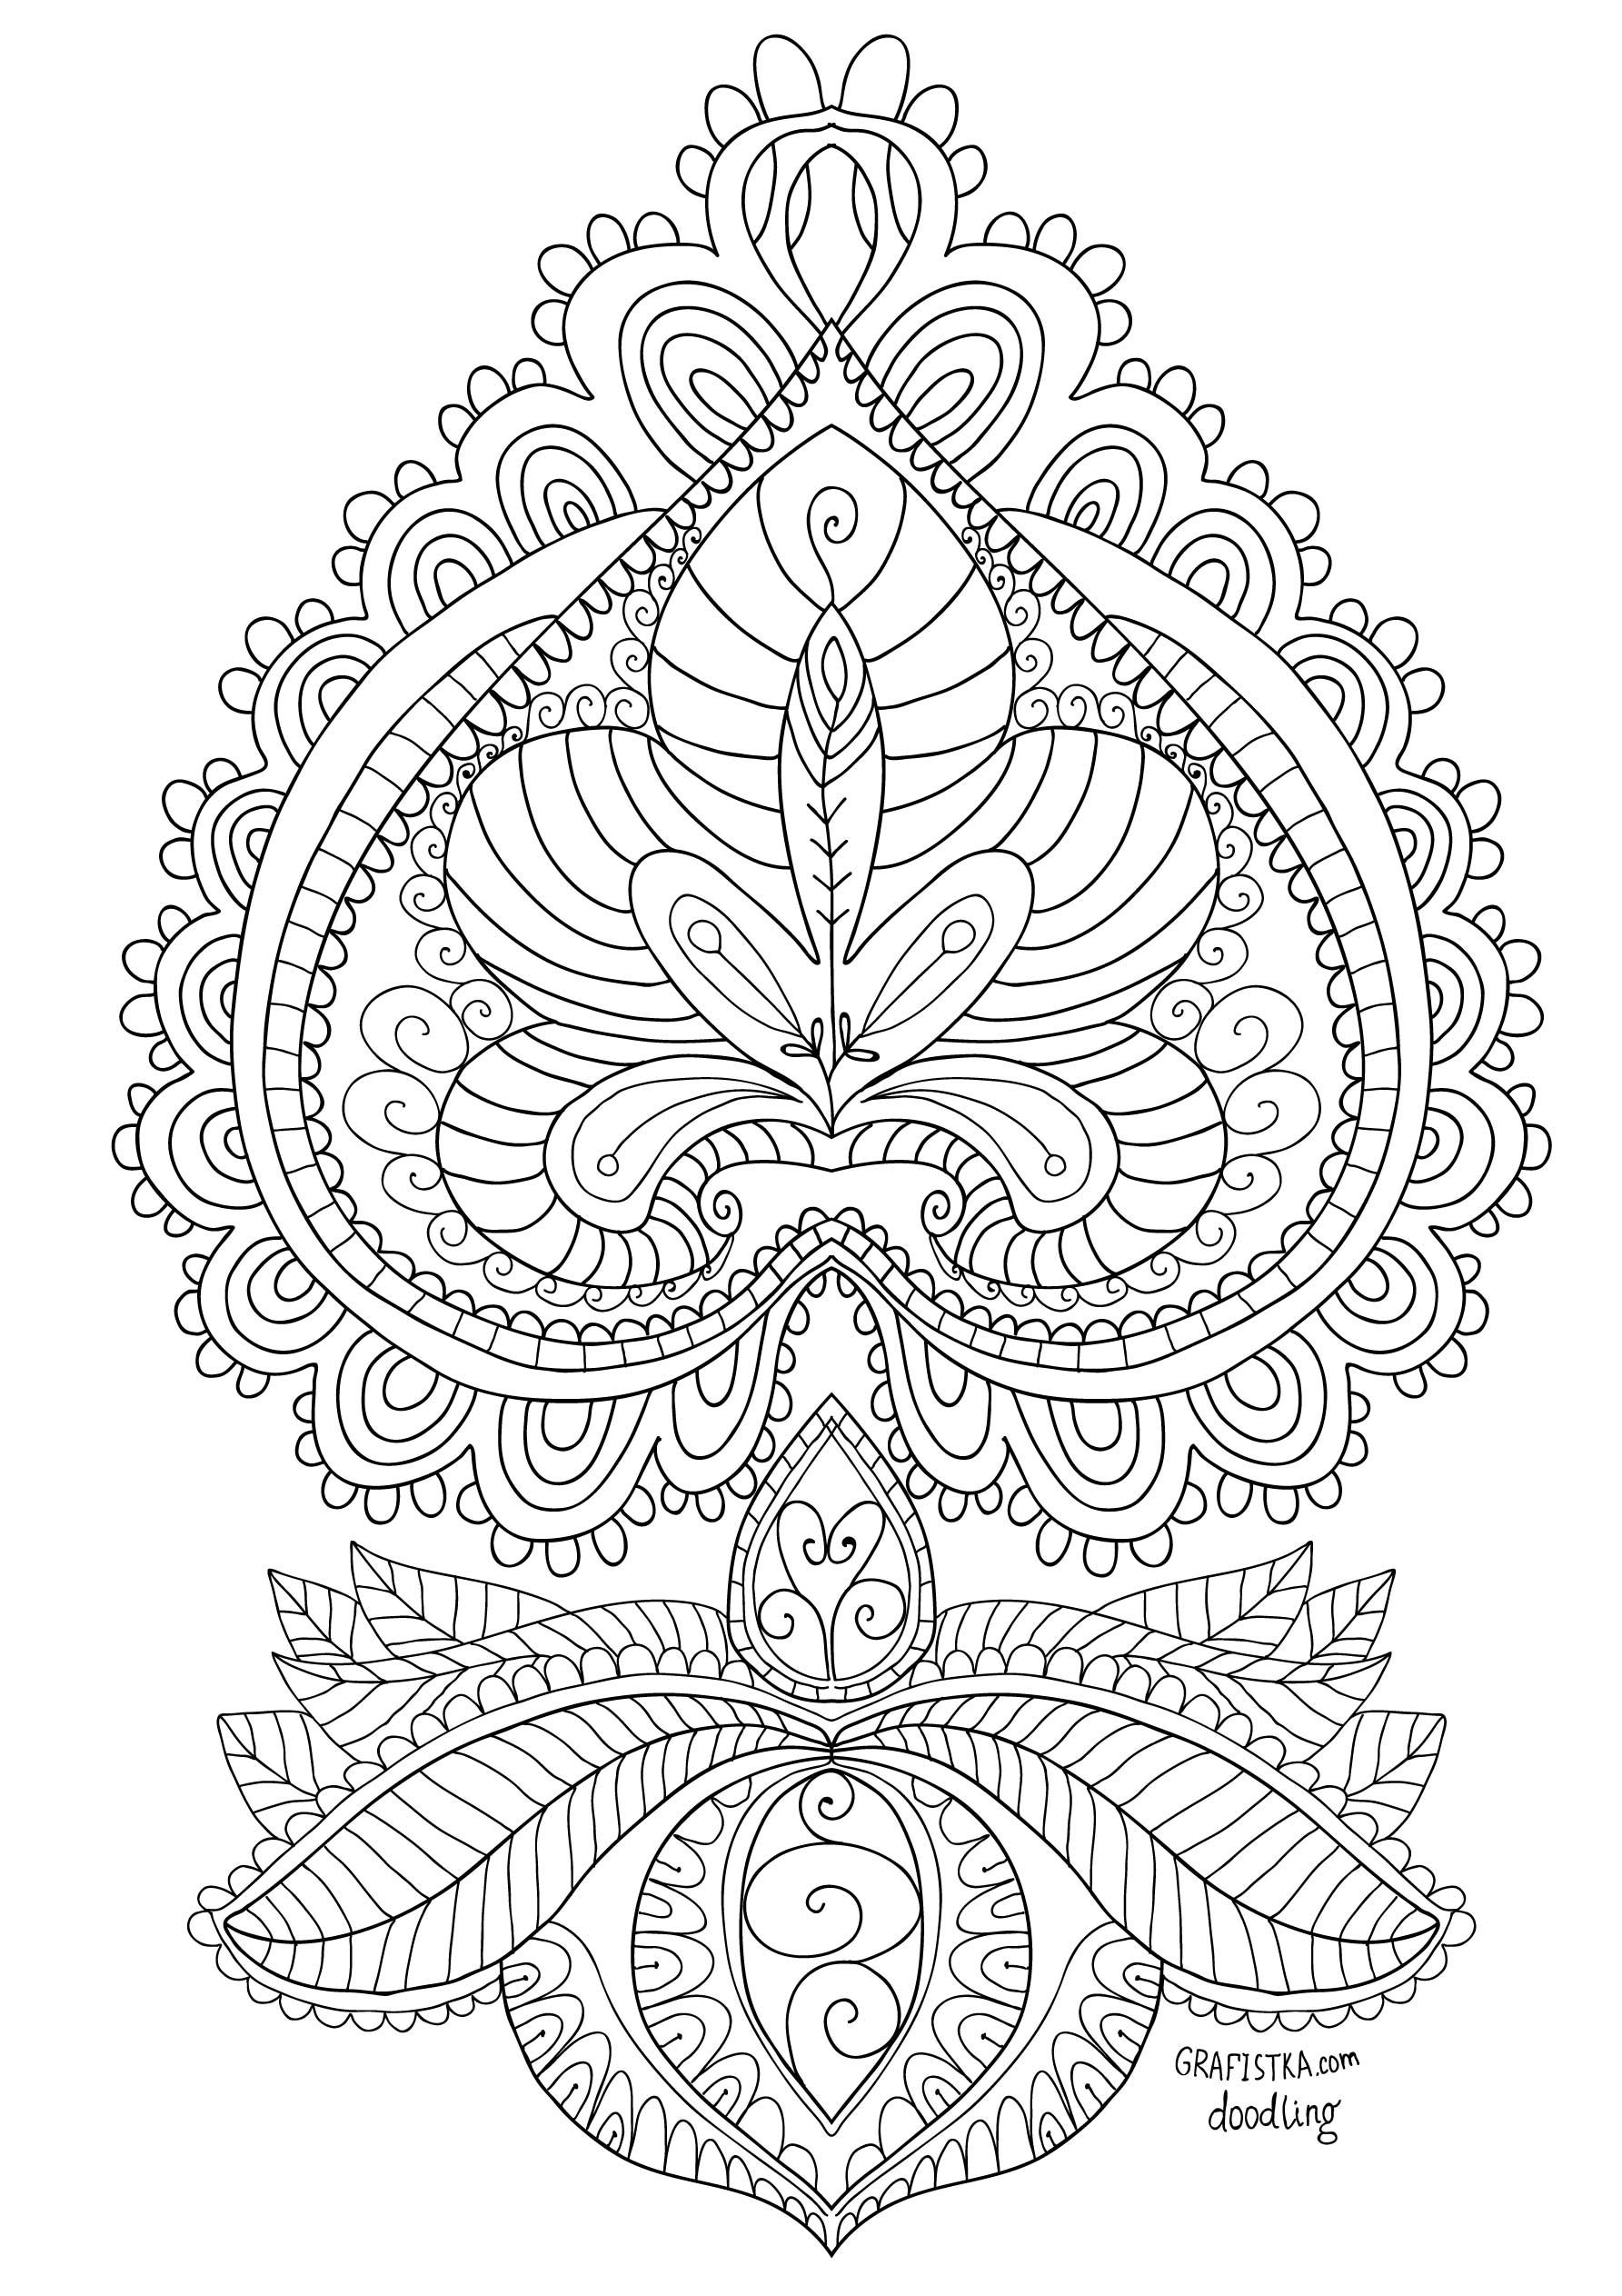 robby and mak coloring pages - photo#35